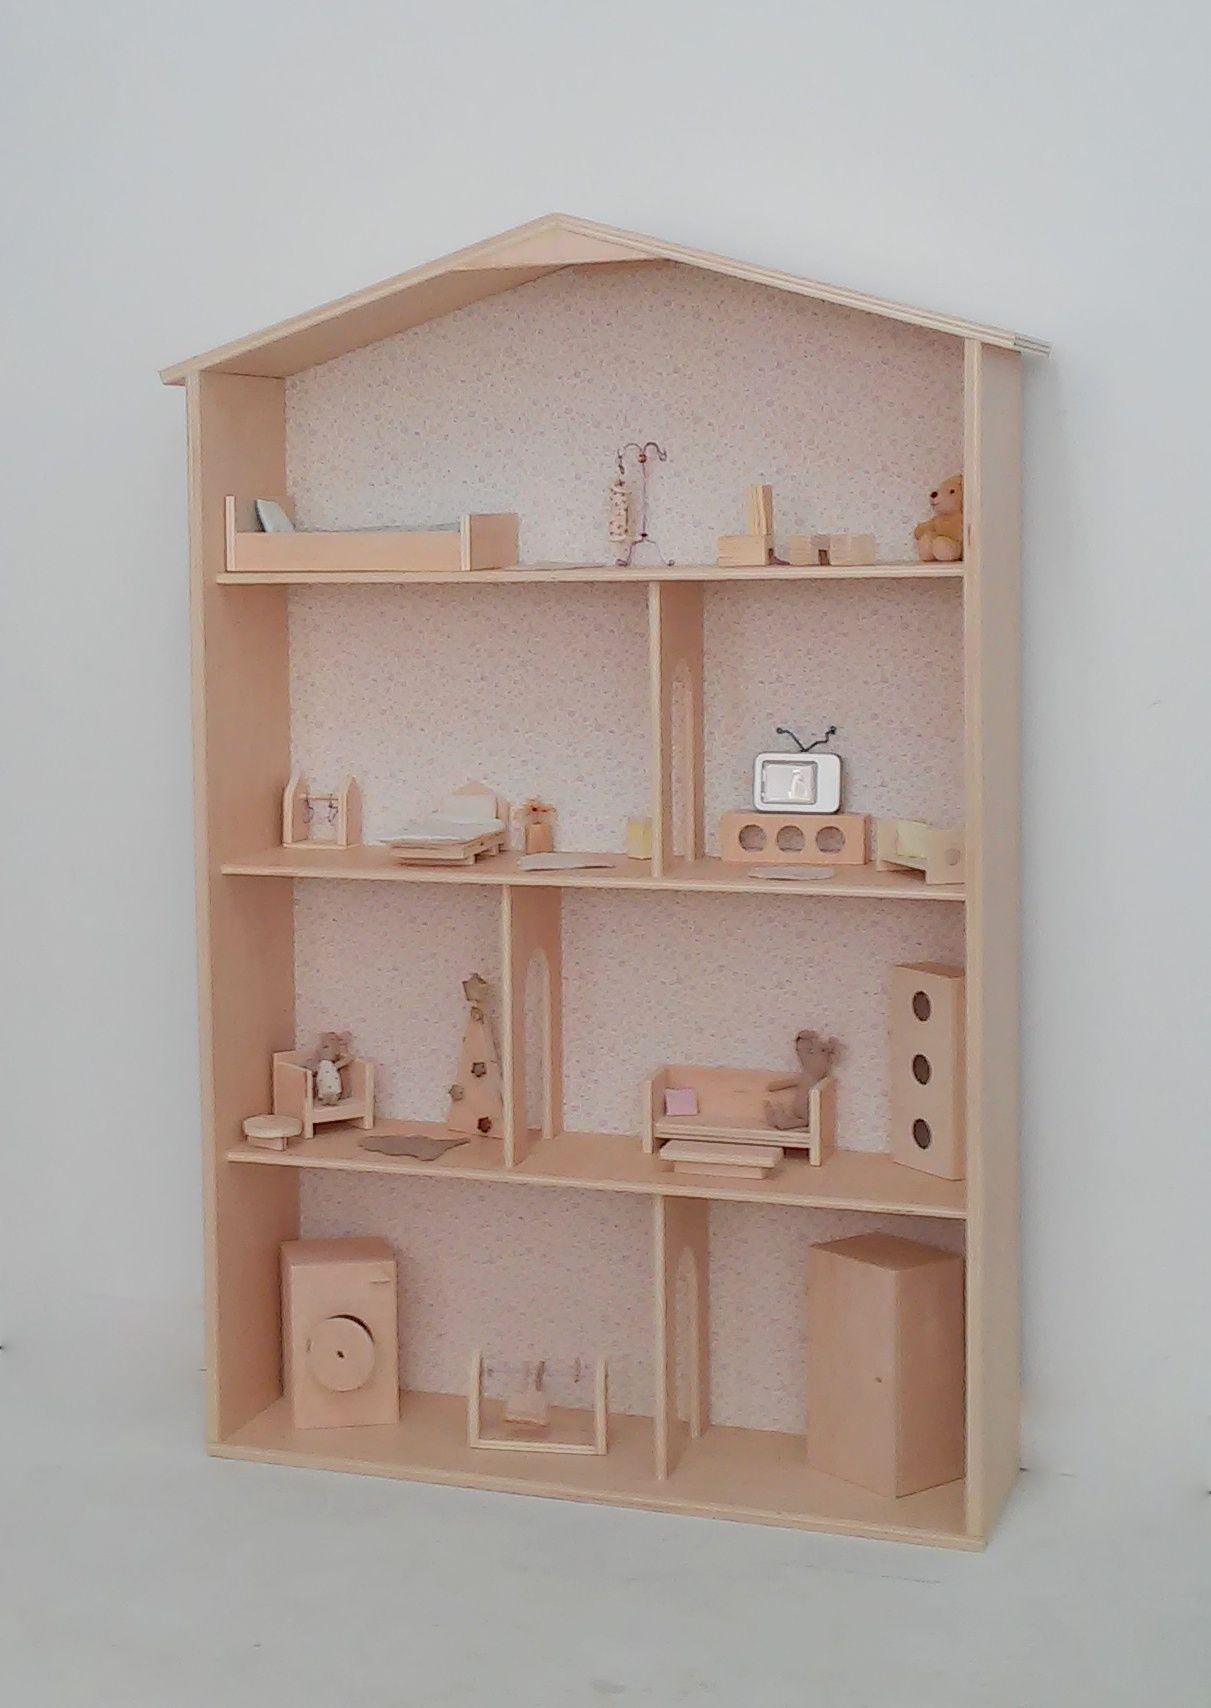 Handmade Wooden Dollhouse For Maileg Mice And Rabbit Find Out